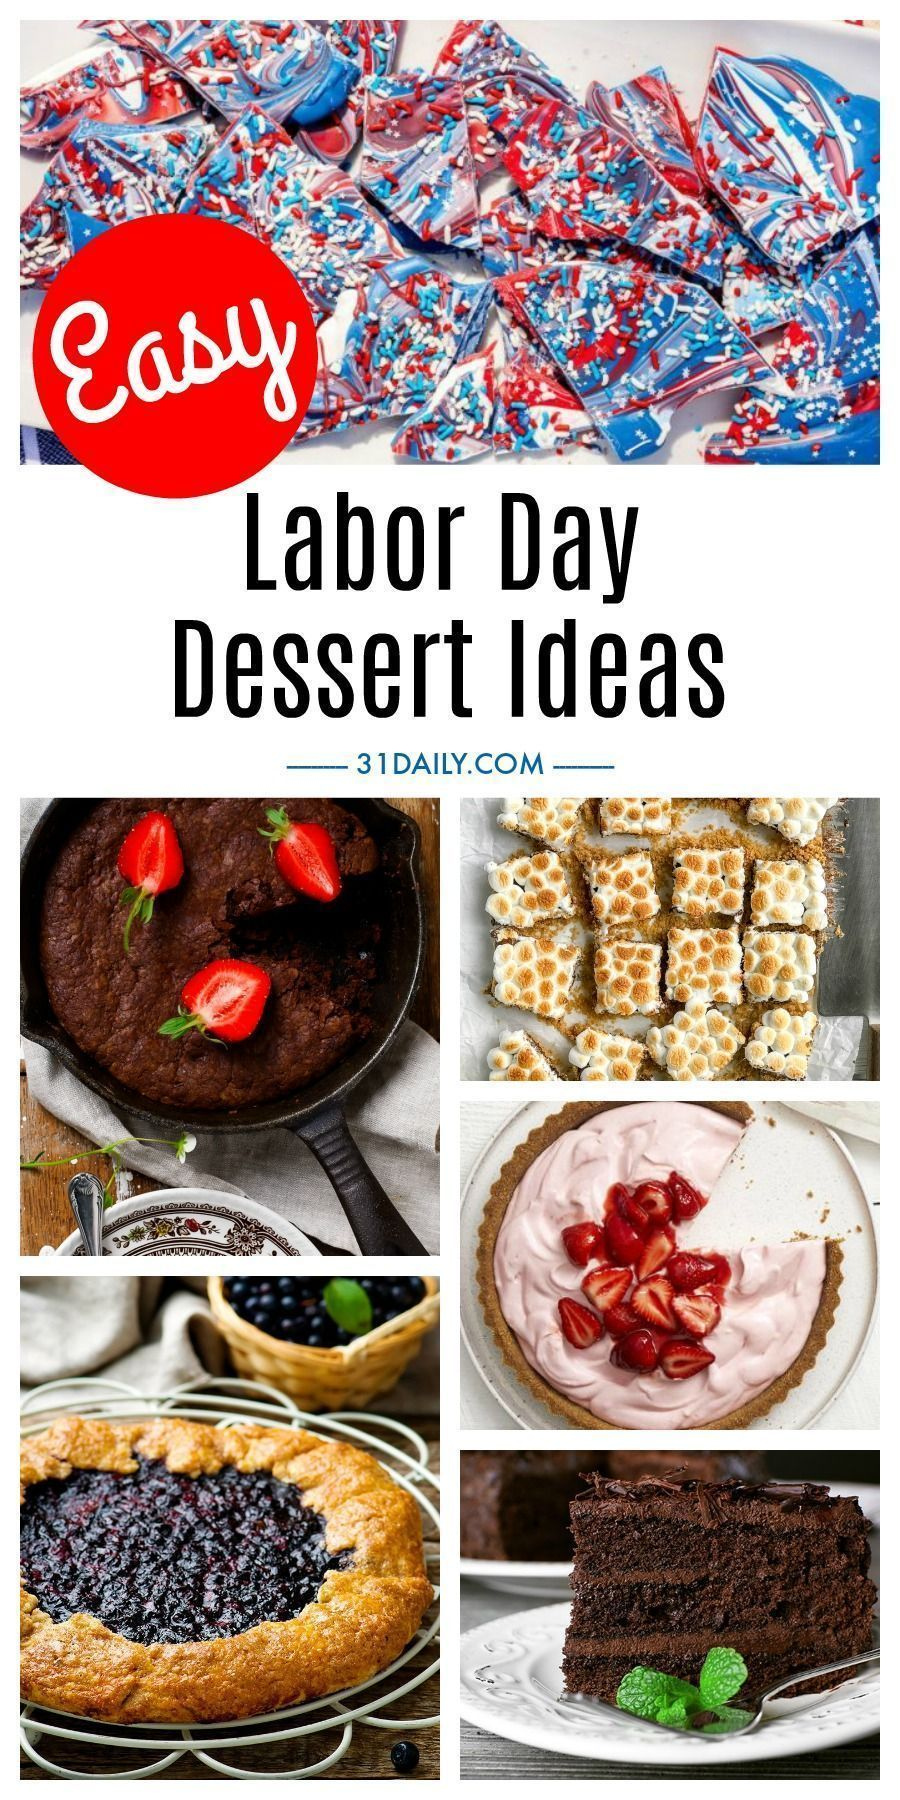 Celebrate summer s end with these Easy Labor Day Dessert Ideas. From chocolate to berries, pies, cookies, and cakes. It s all simple. And delicious!Easy Labor Day Dessert Ideas | 31Daily.com #laborday #desserts #easydesserts #summer #31Daily #labordaydesserts Celebrate summer s end with these Easy Labor Day Dessert Ideas. From chocolate to berries, pies, cookies, and cakes. It s all simple. And delicious!Easy Labor Day Dessert Ideas | 31Daily.com #laborday #desserts #easydesserts #summer #31Dail #labordayfoodideas